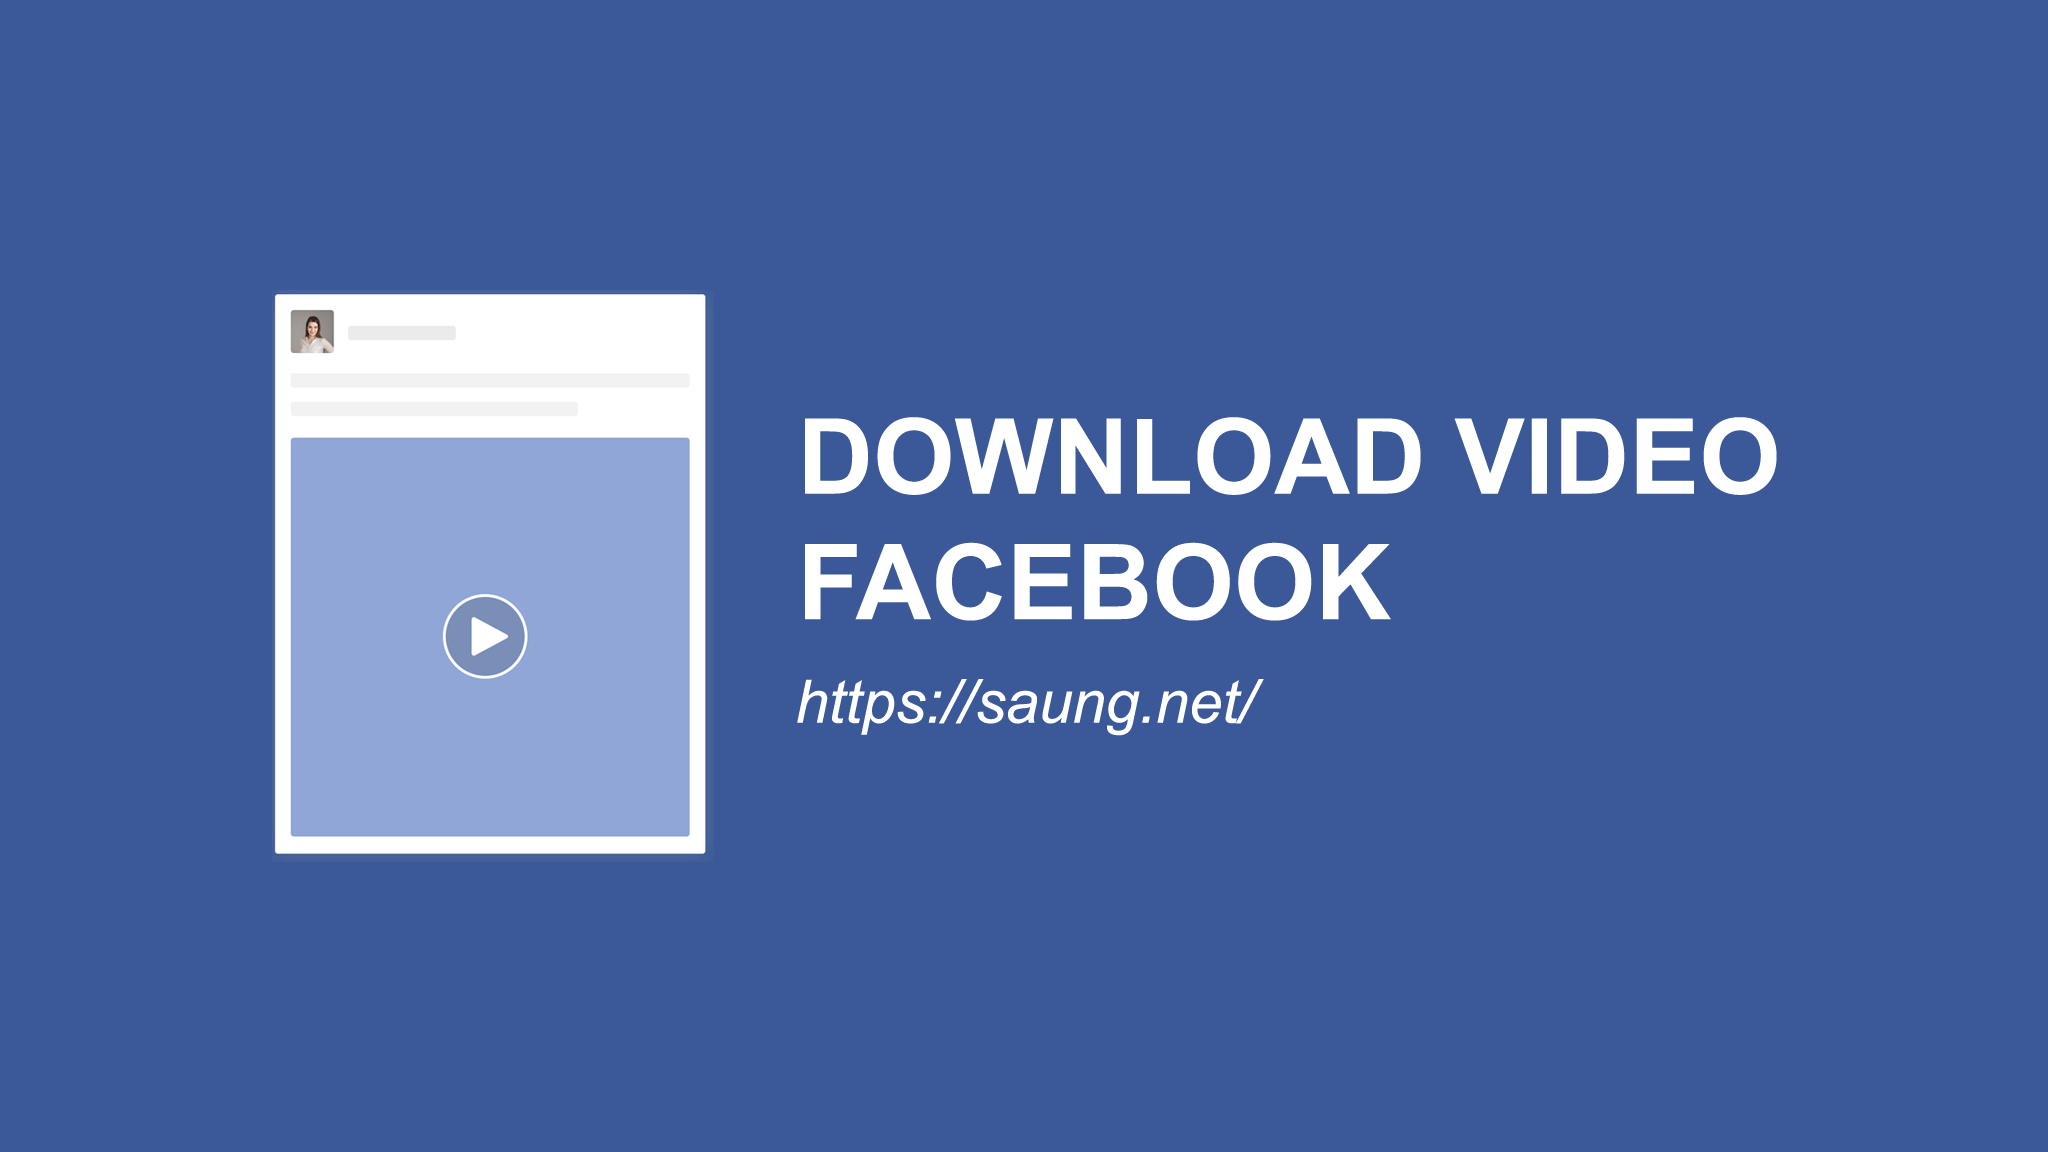 cara download video facebook di iphone 6